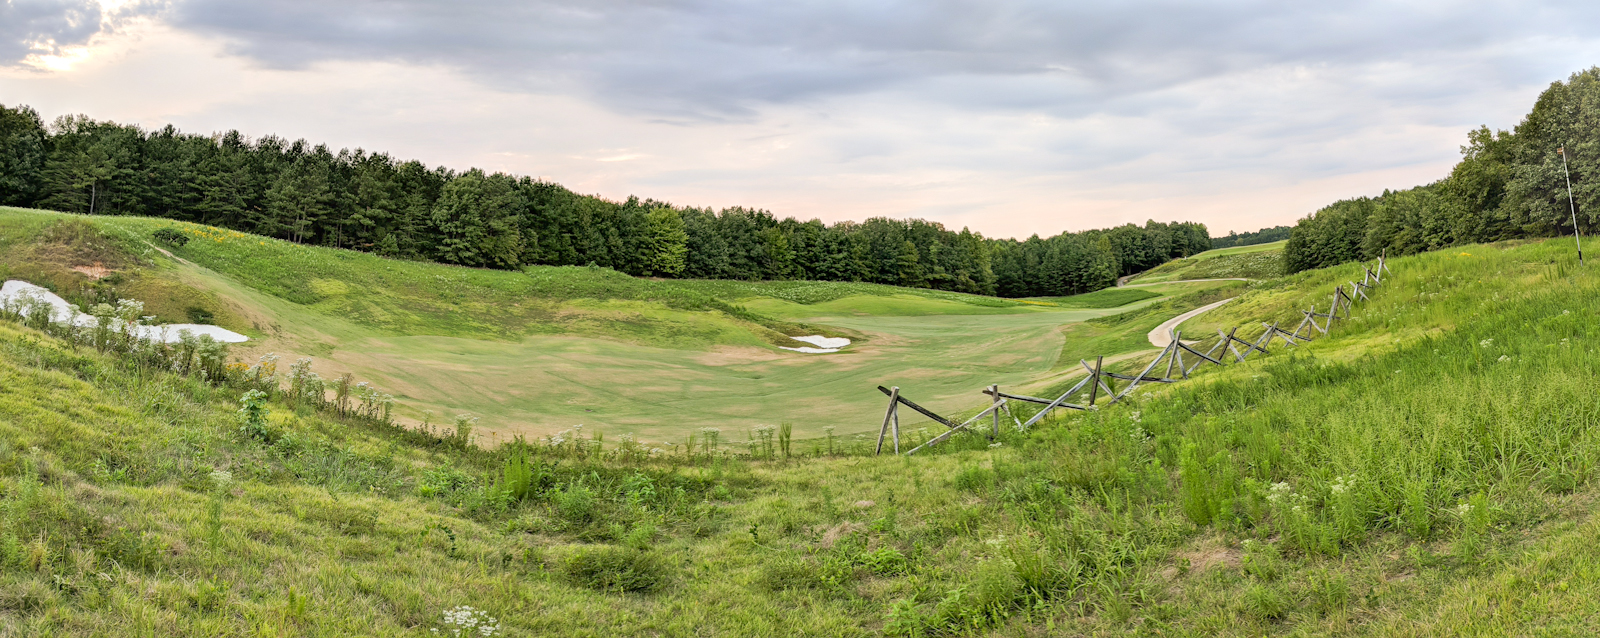 Royal_New_Kent_Gof_Club-Course_by_Terri_Aigner-66-of-74